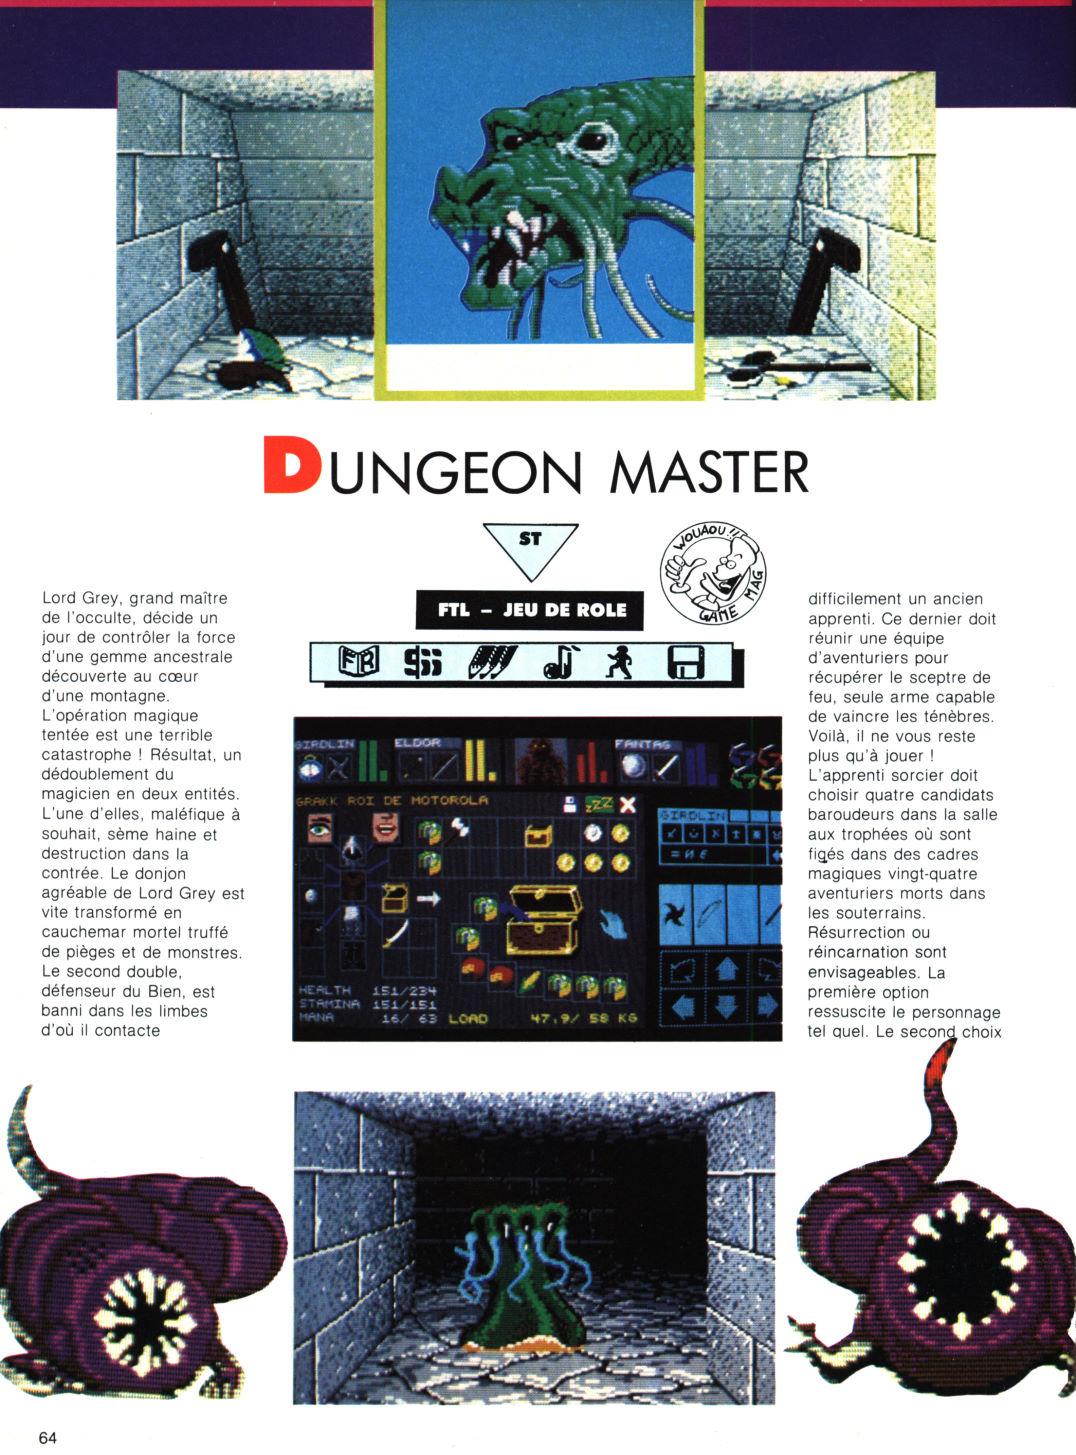 Dungeon Master Review published in French magazine 'Game Mag', Issue #5 March 1988, Page 64